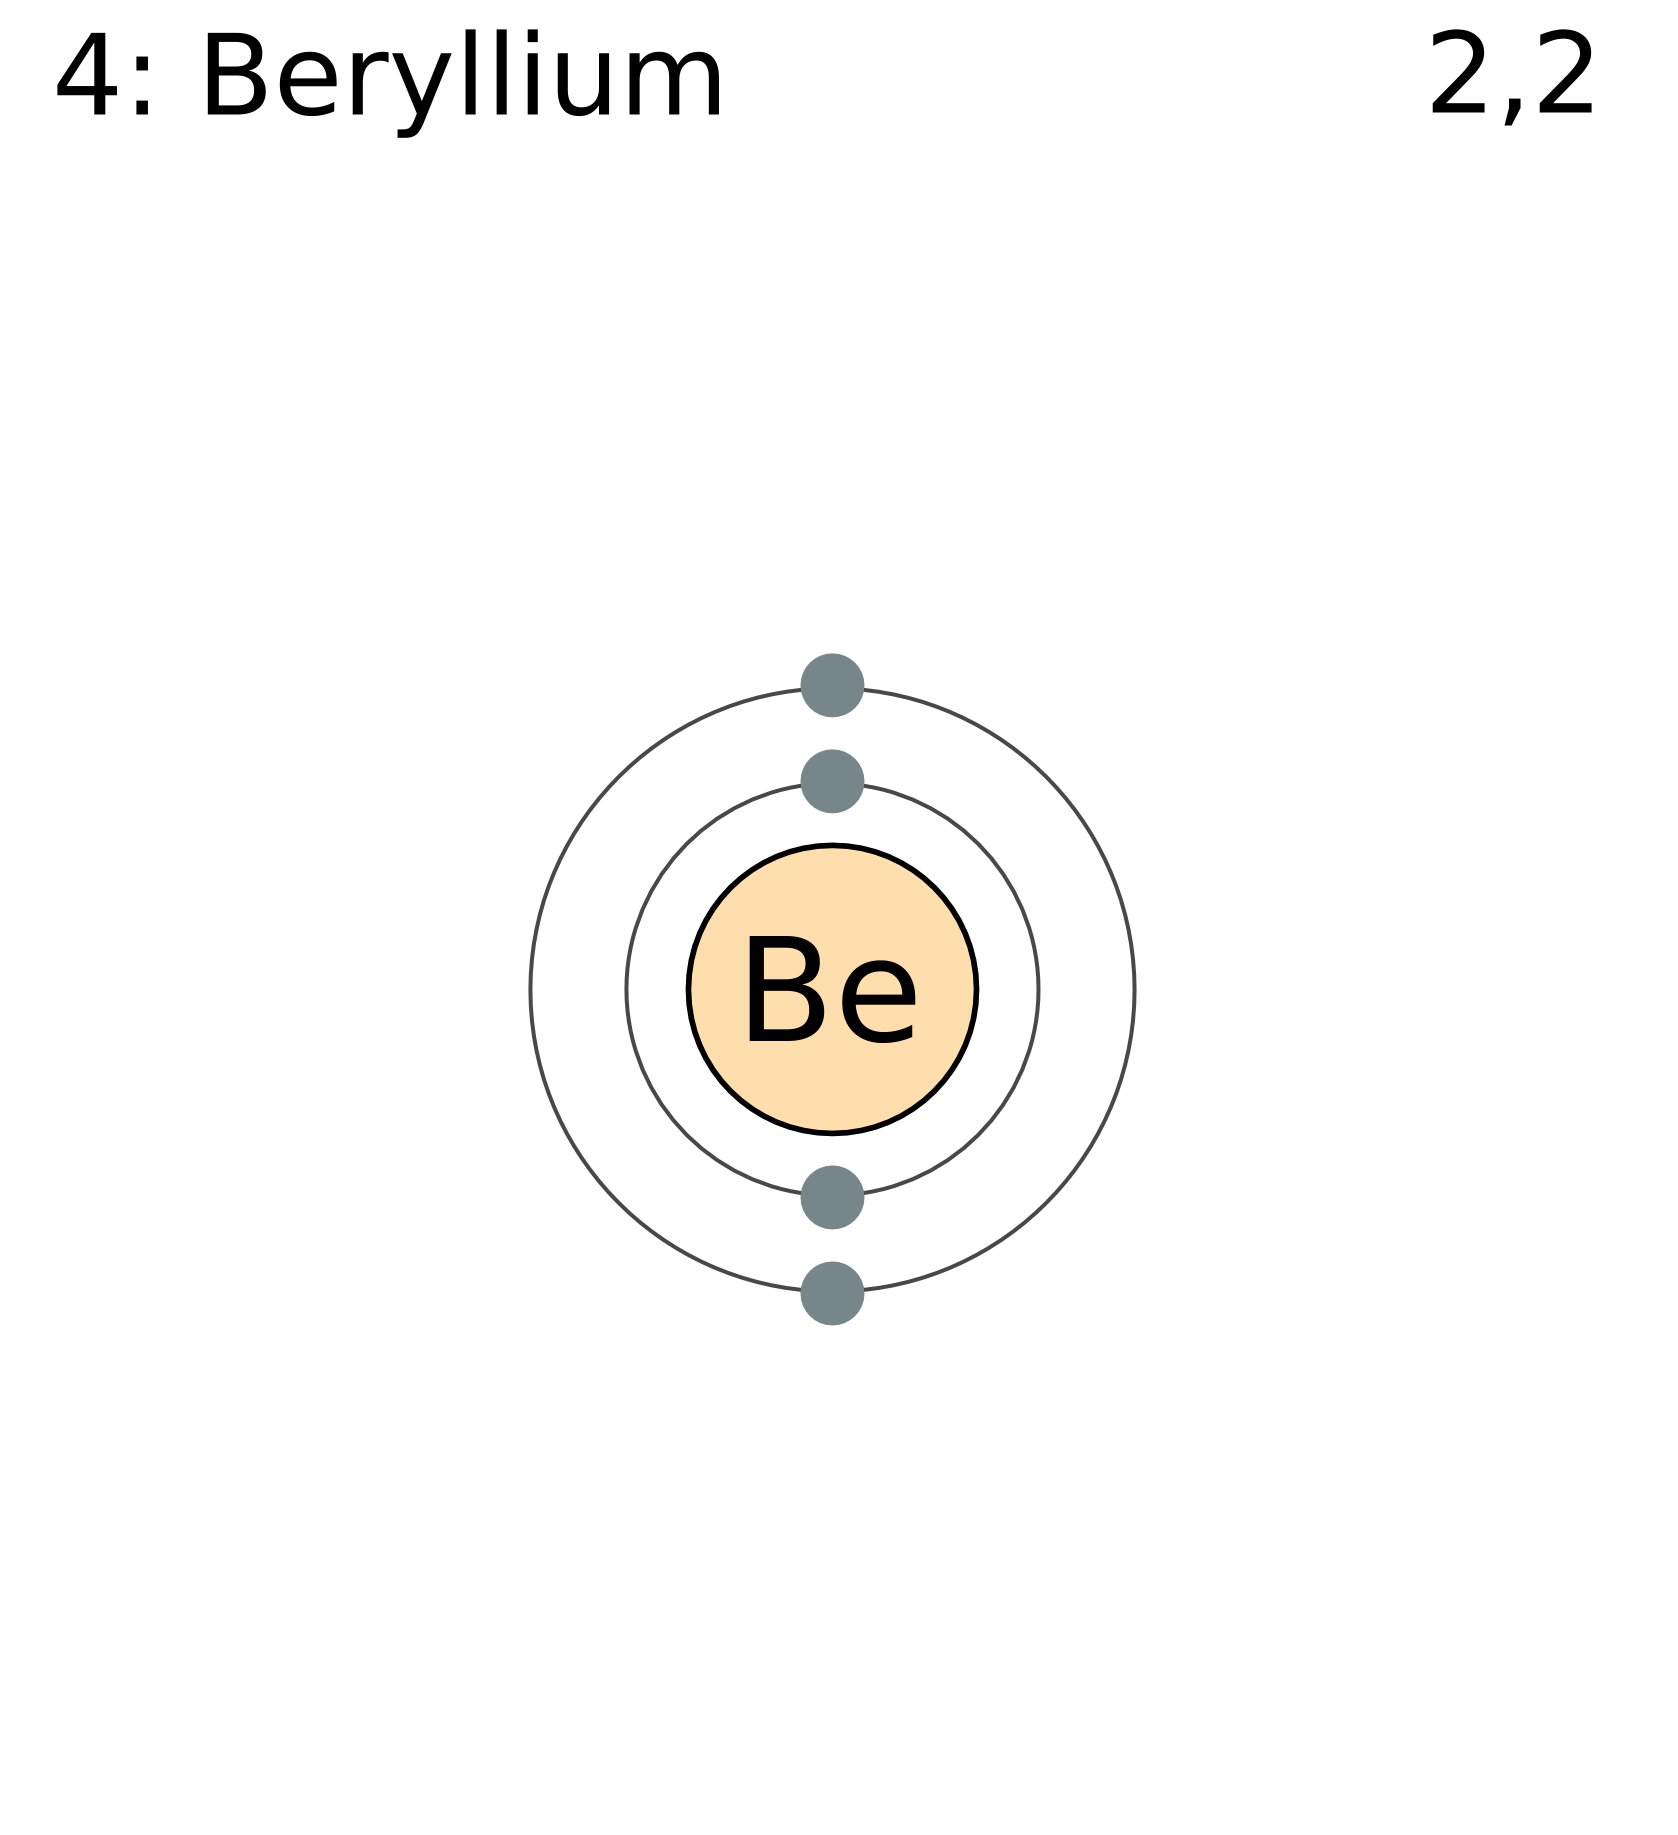 Beryllium lessons tes teach fileelectron shell 004 berylliumg wikipedia ccuart Image collections